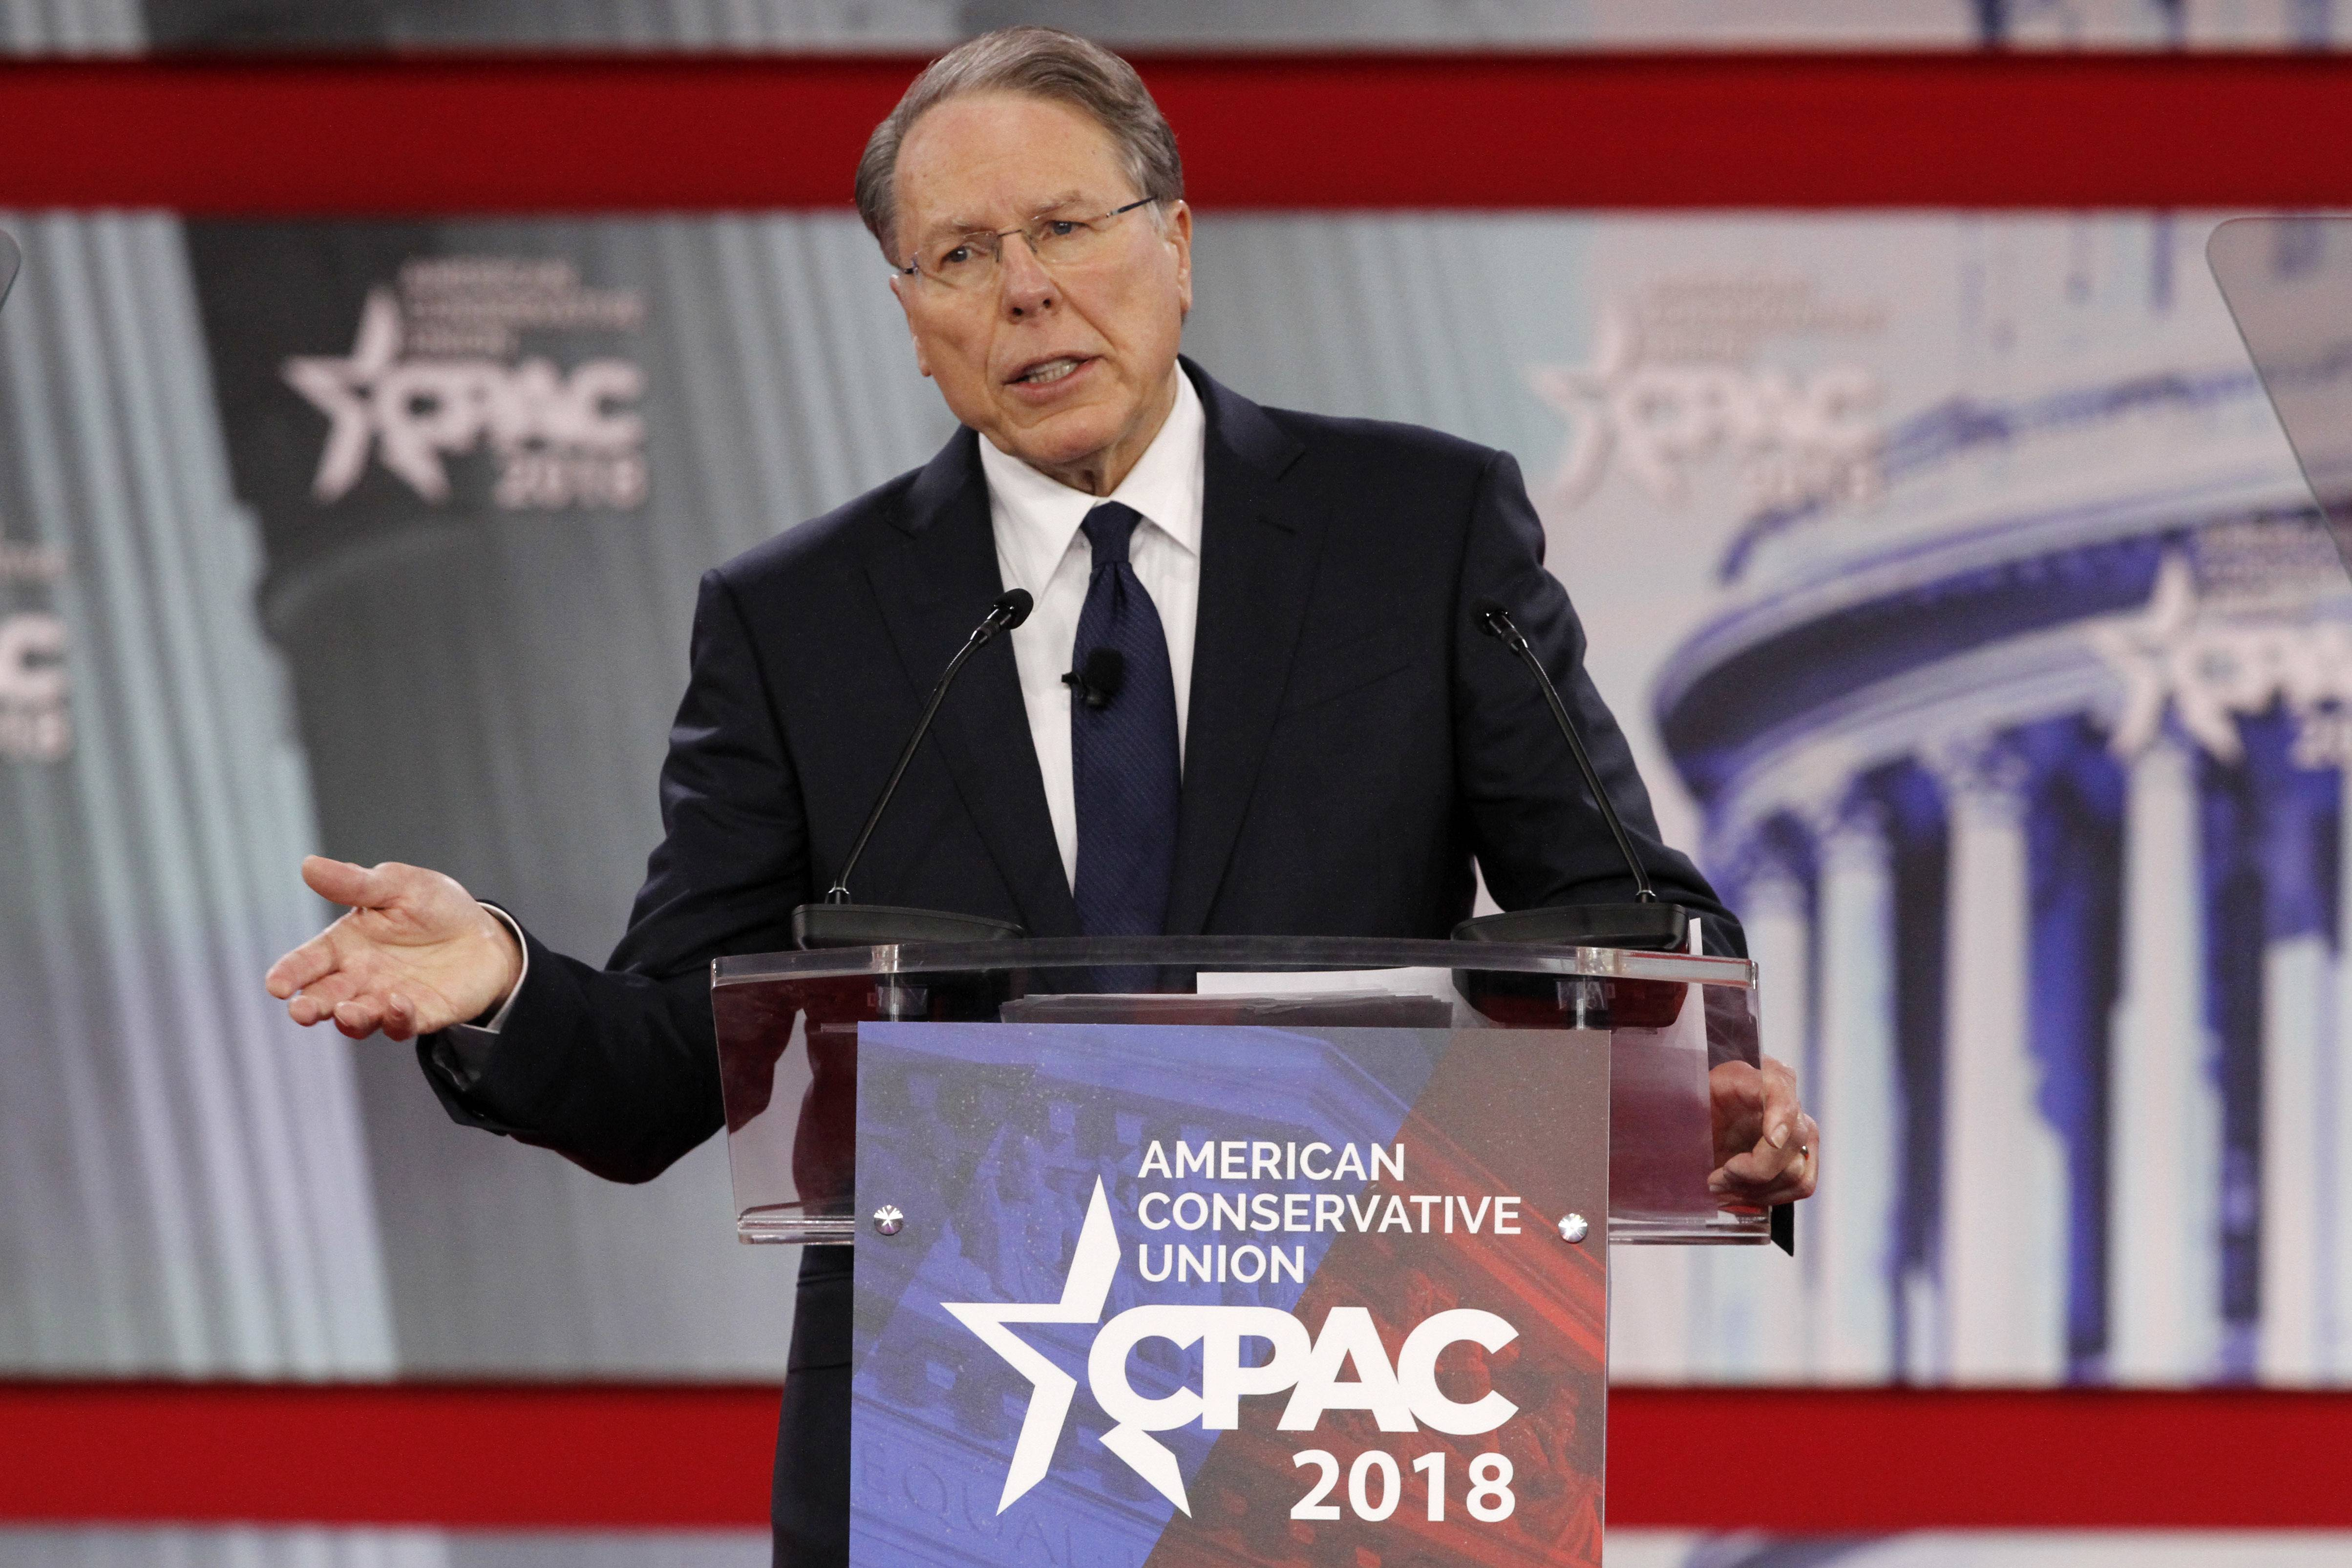 National Rifle Association Executive Vice President and CEO Wayne LaPierre speaks Thursday at the Conservative Political Action Conference (CPAC) in National Harbor, Maryland.